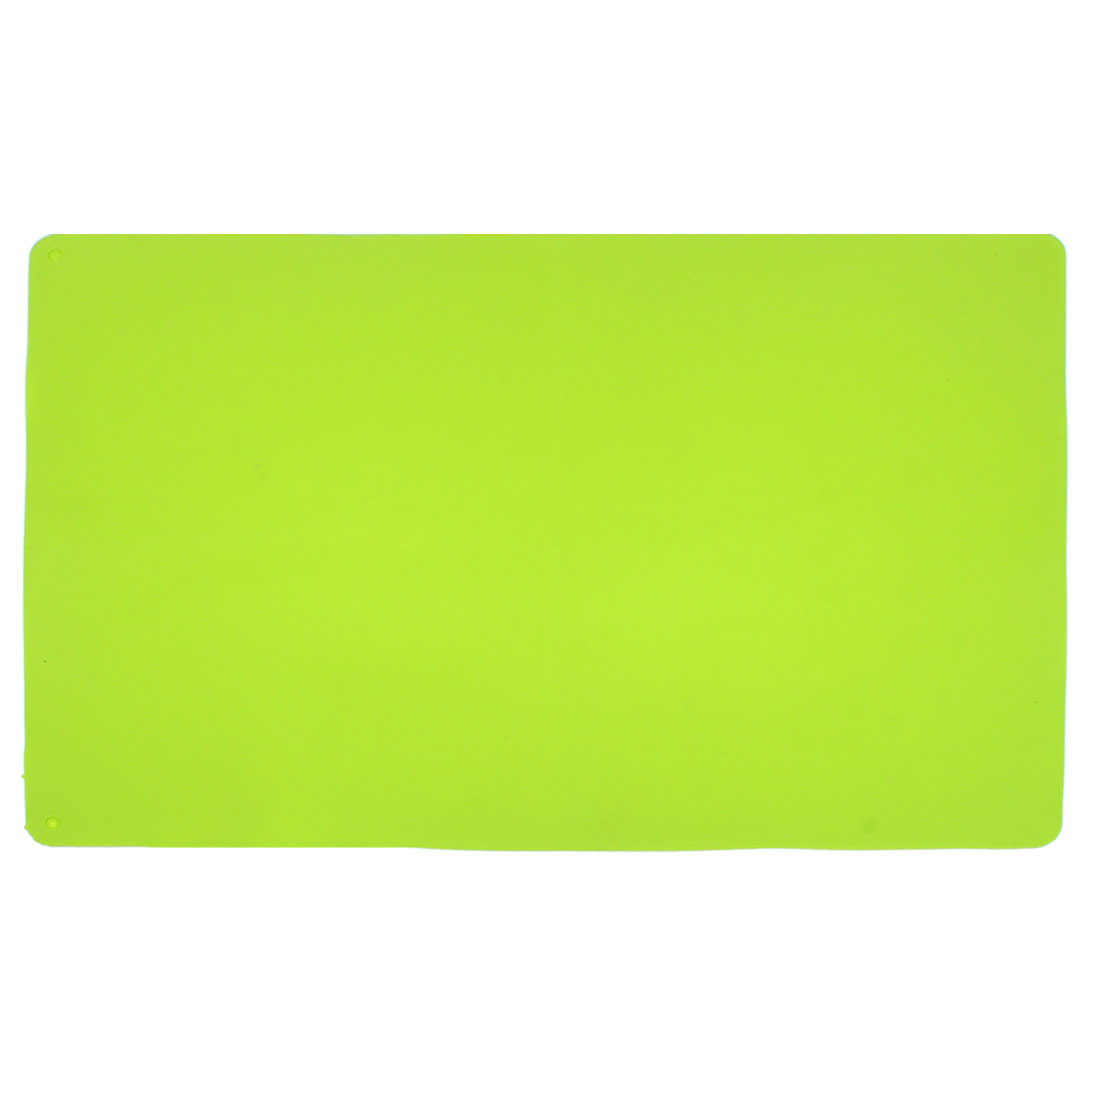 Rectangle Silicone Heat Resistant Cup Pot Bowl Table Mat Pad Coaster Green